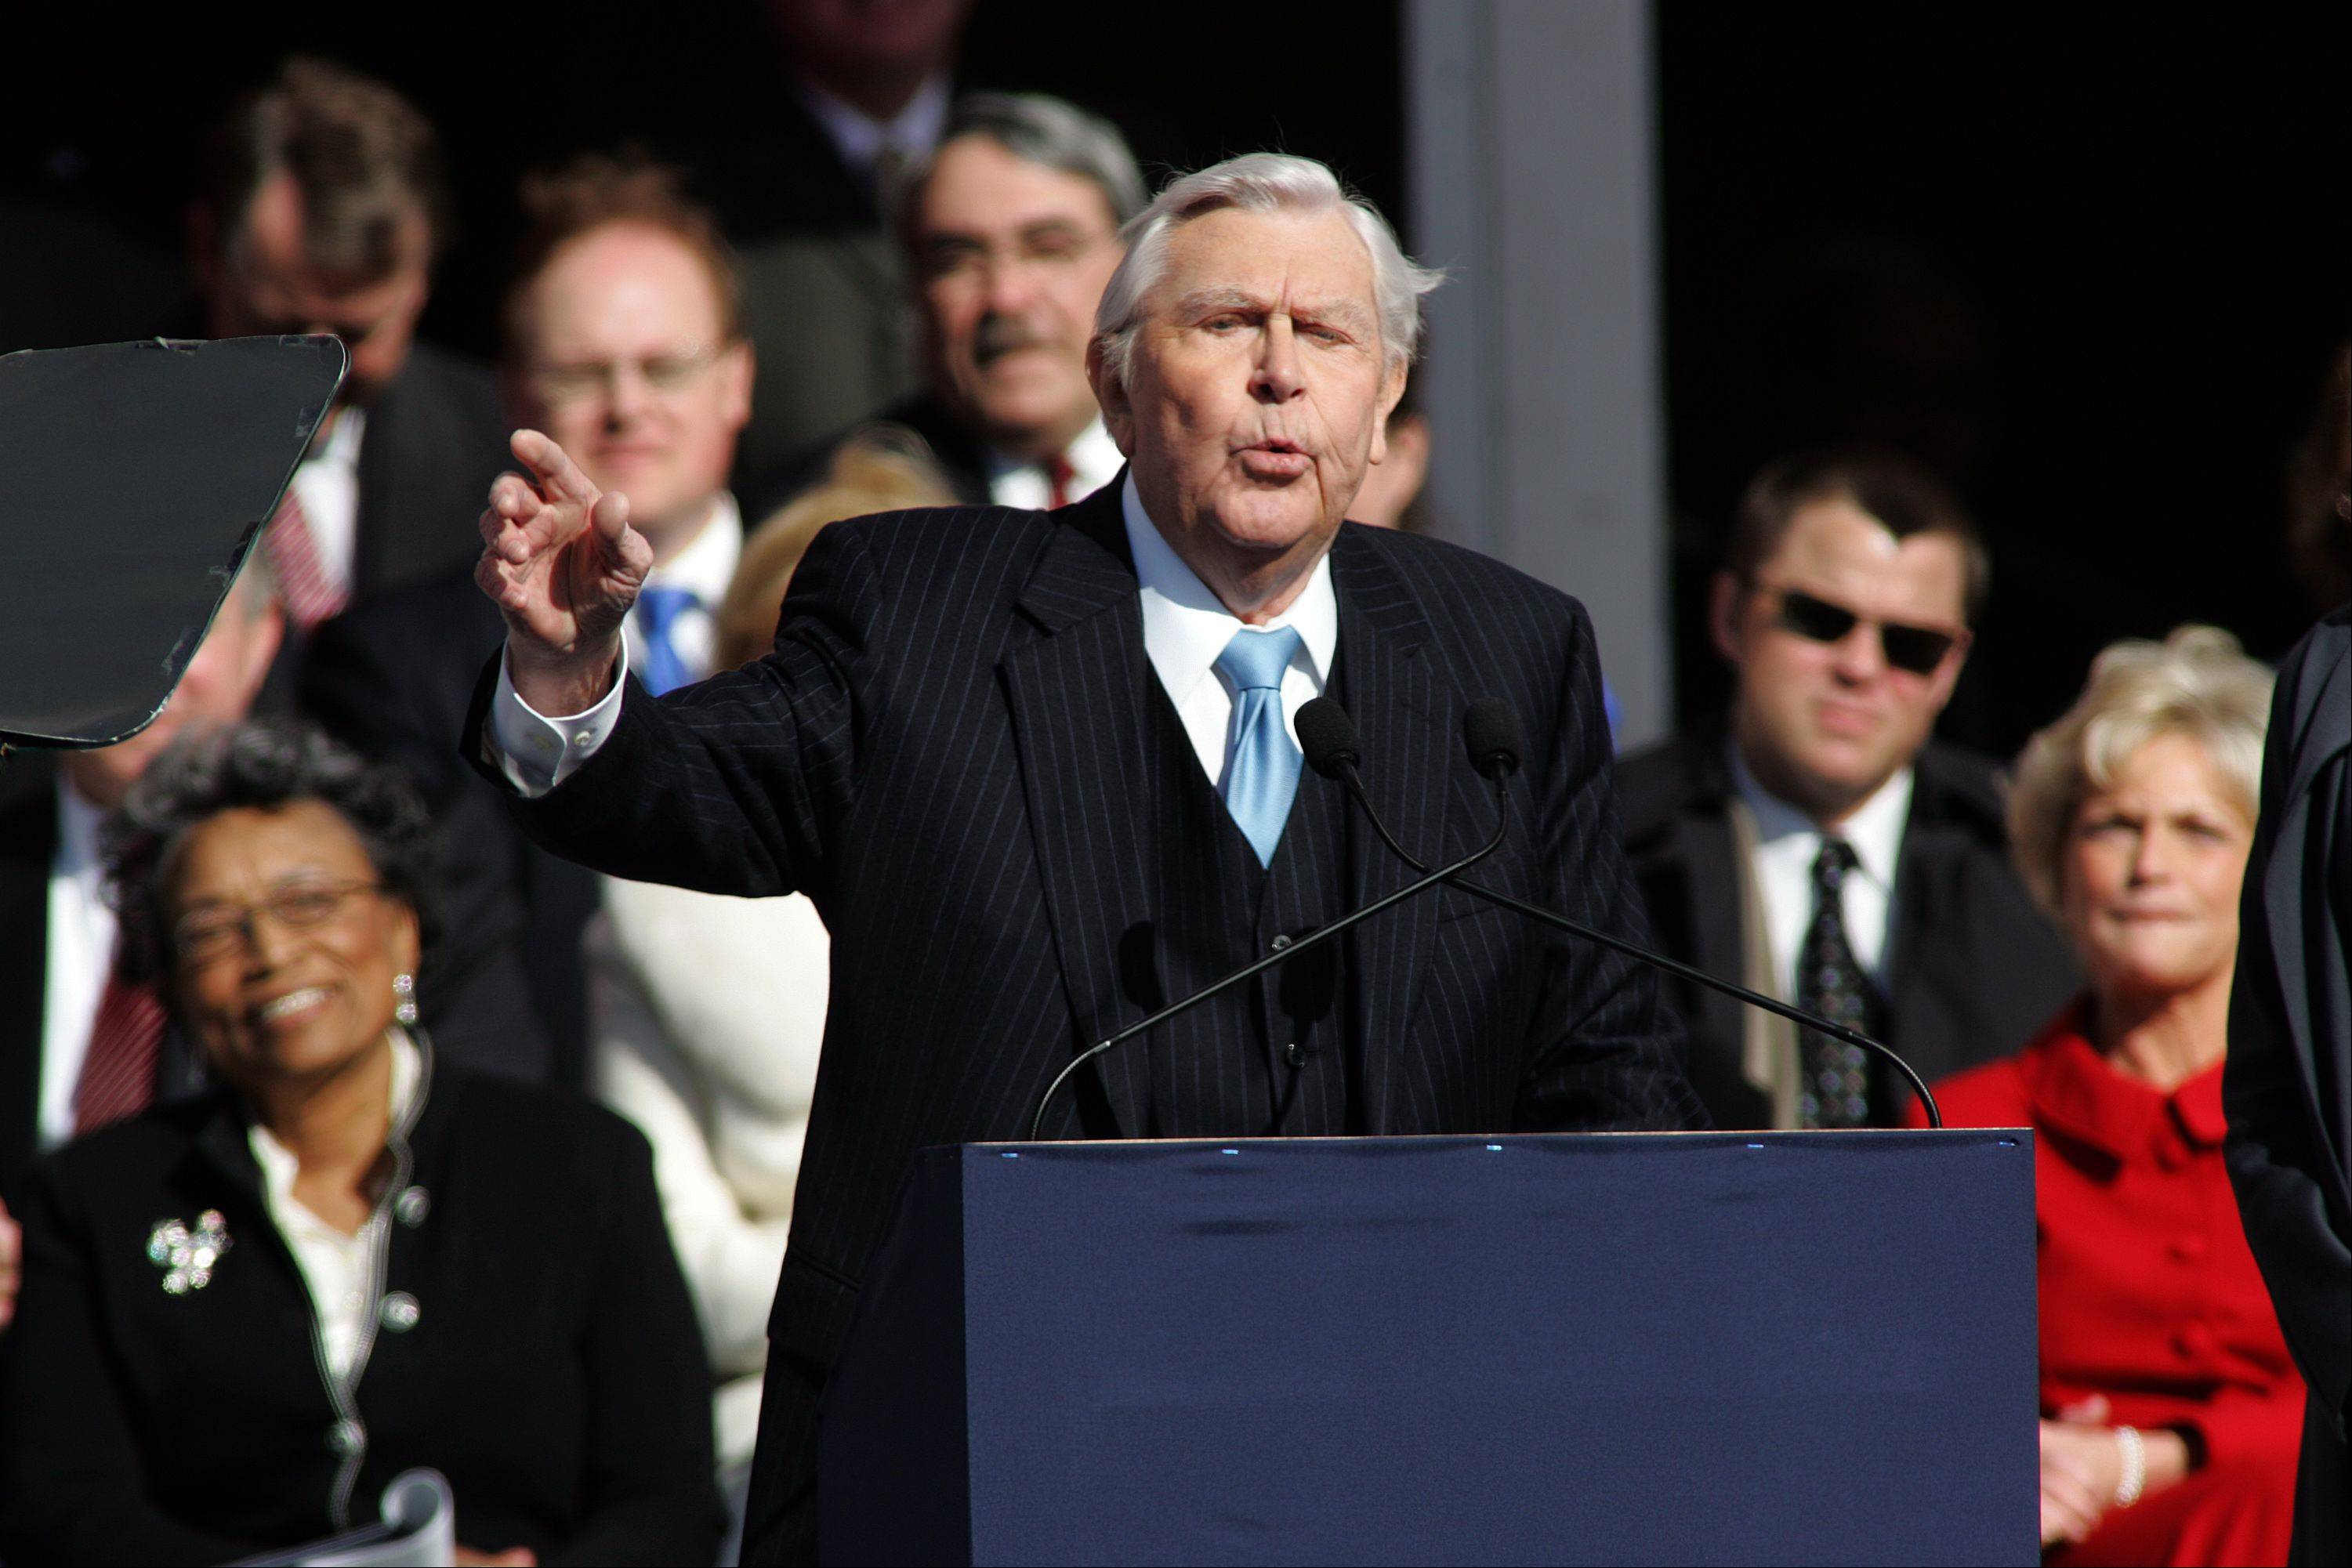 Actor Andy Griffith reads poem after North Carolina Gov. Beverly Perdue was sworn into office during North Carolina inaugural ceremonies Saturday, Jan. 10, 2009 at the State Library building in Raleigh, N.C.